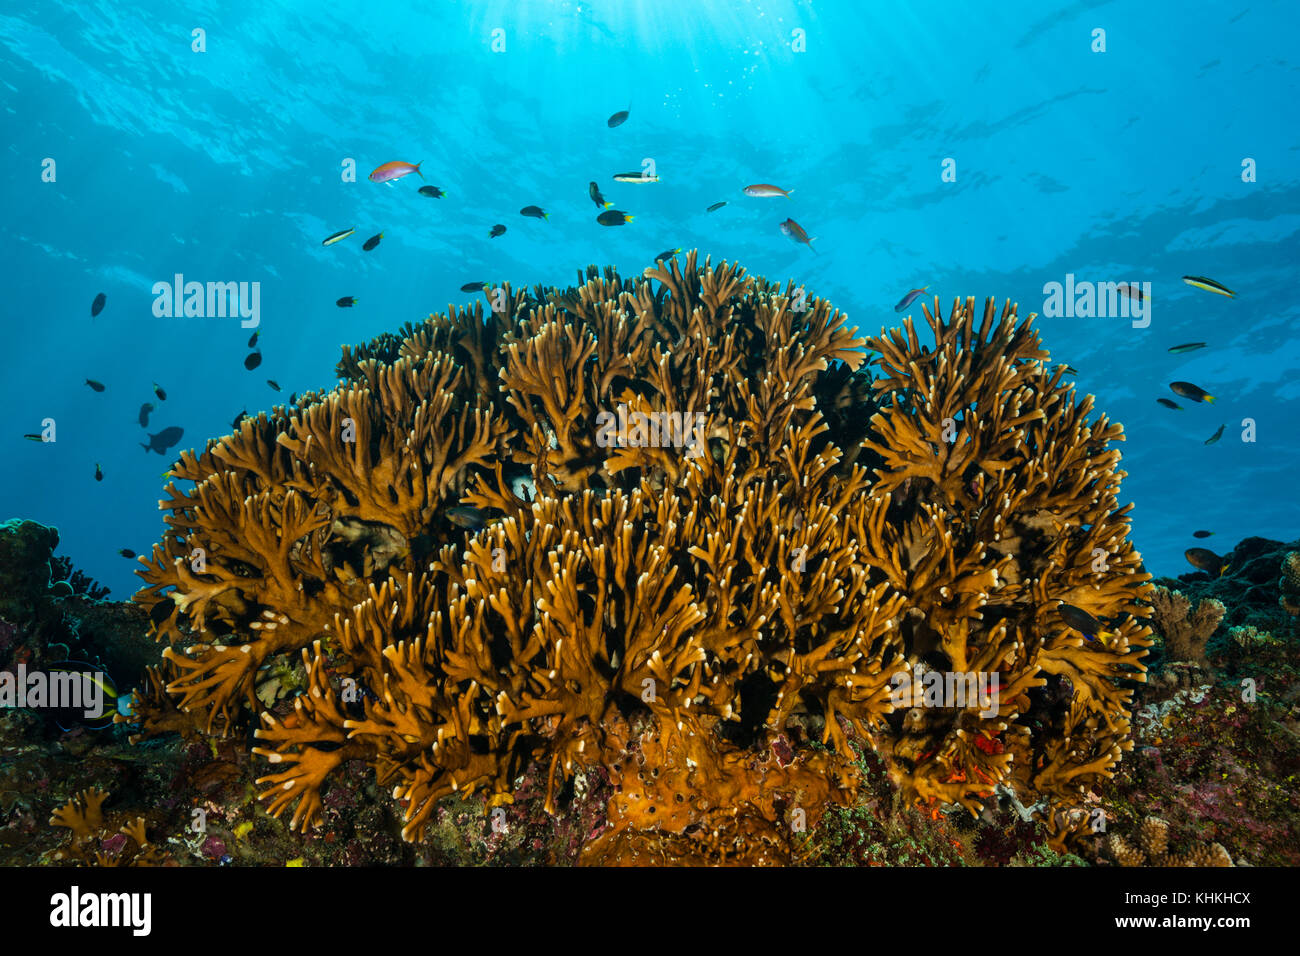 Fire Coral in Coral Reef, Millepora sp., Christmas Island, Australia - Stock Image